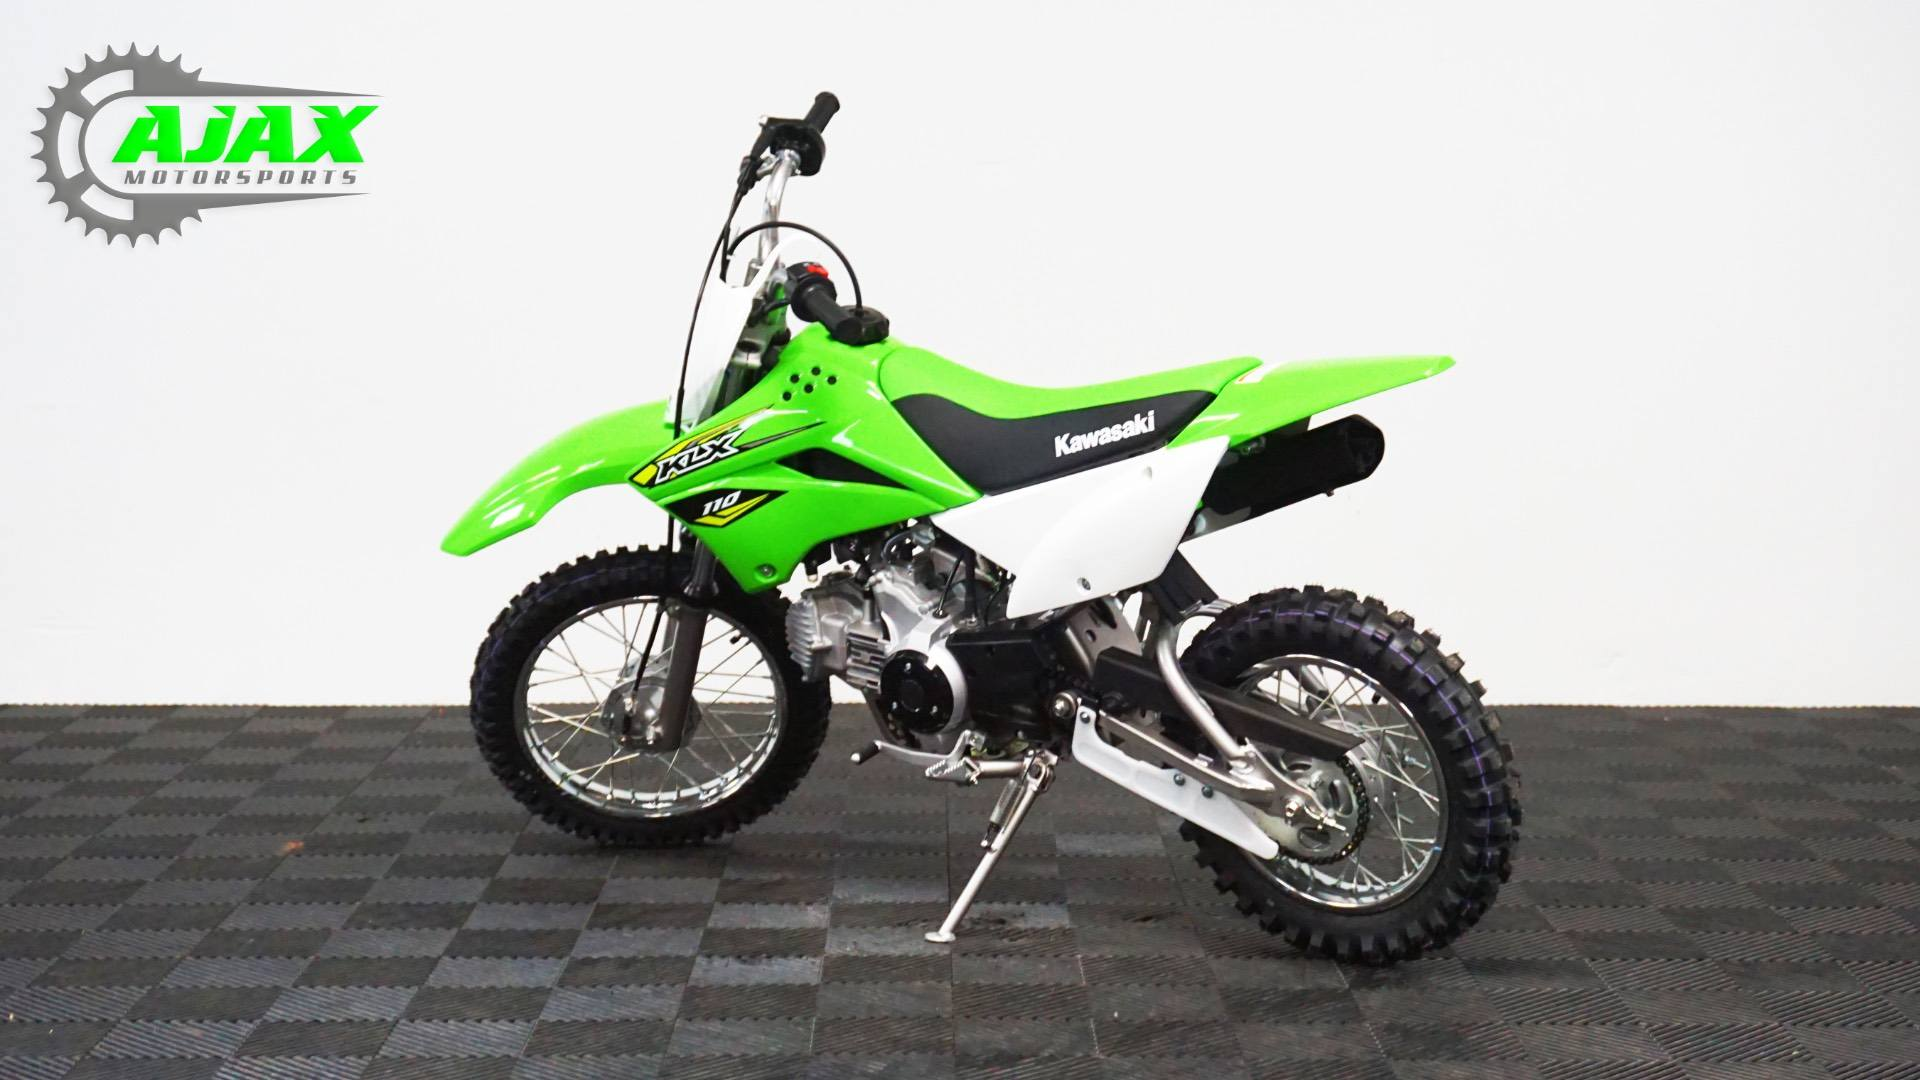 new 2018 kawasaki klx 110 motorcycles in oklahoma city, ok | stock